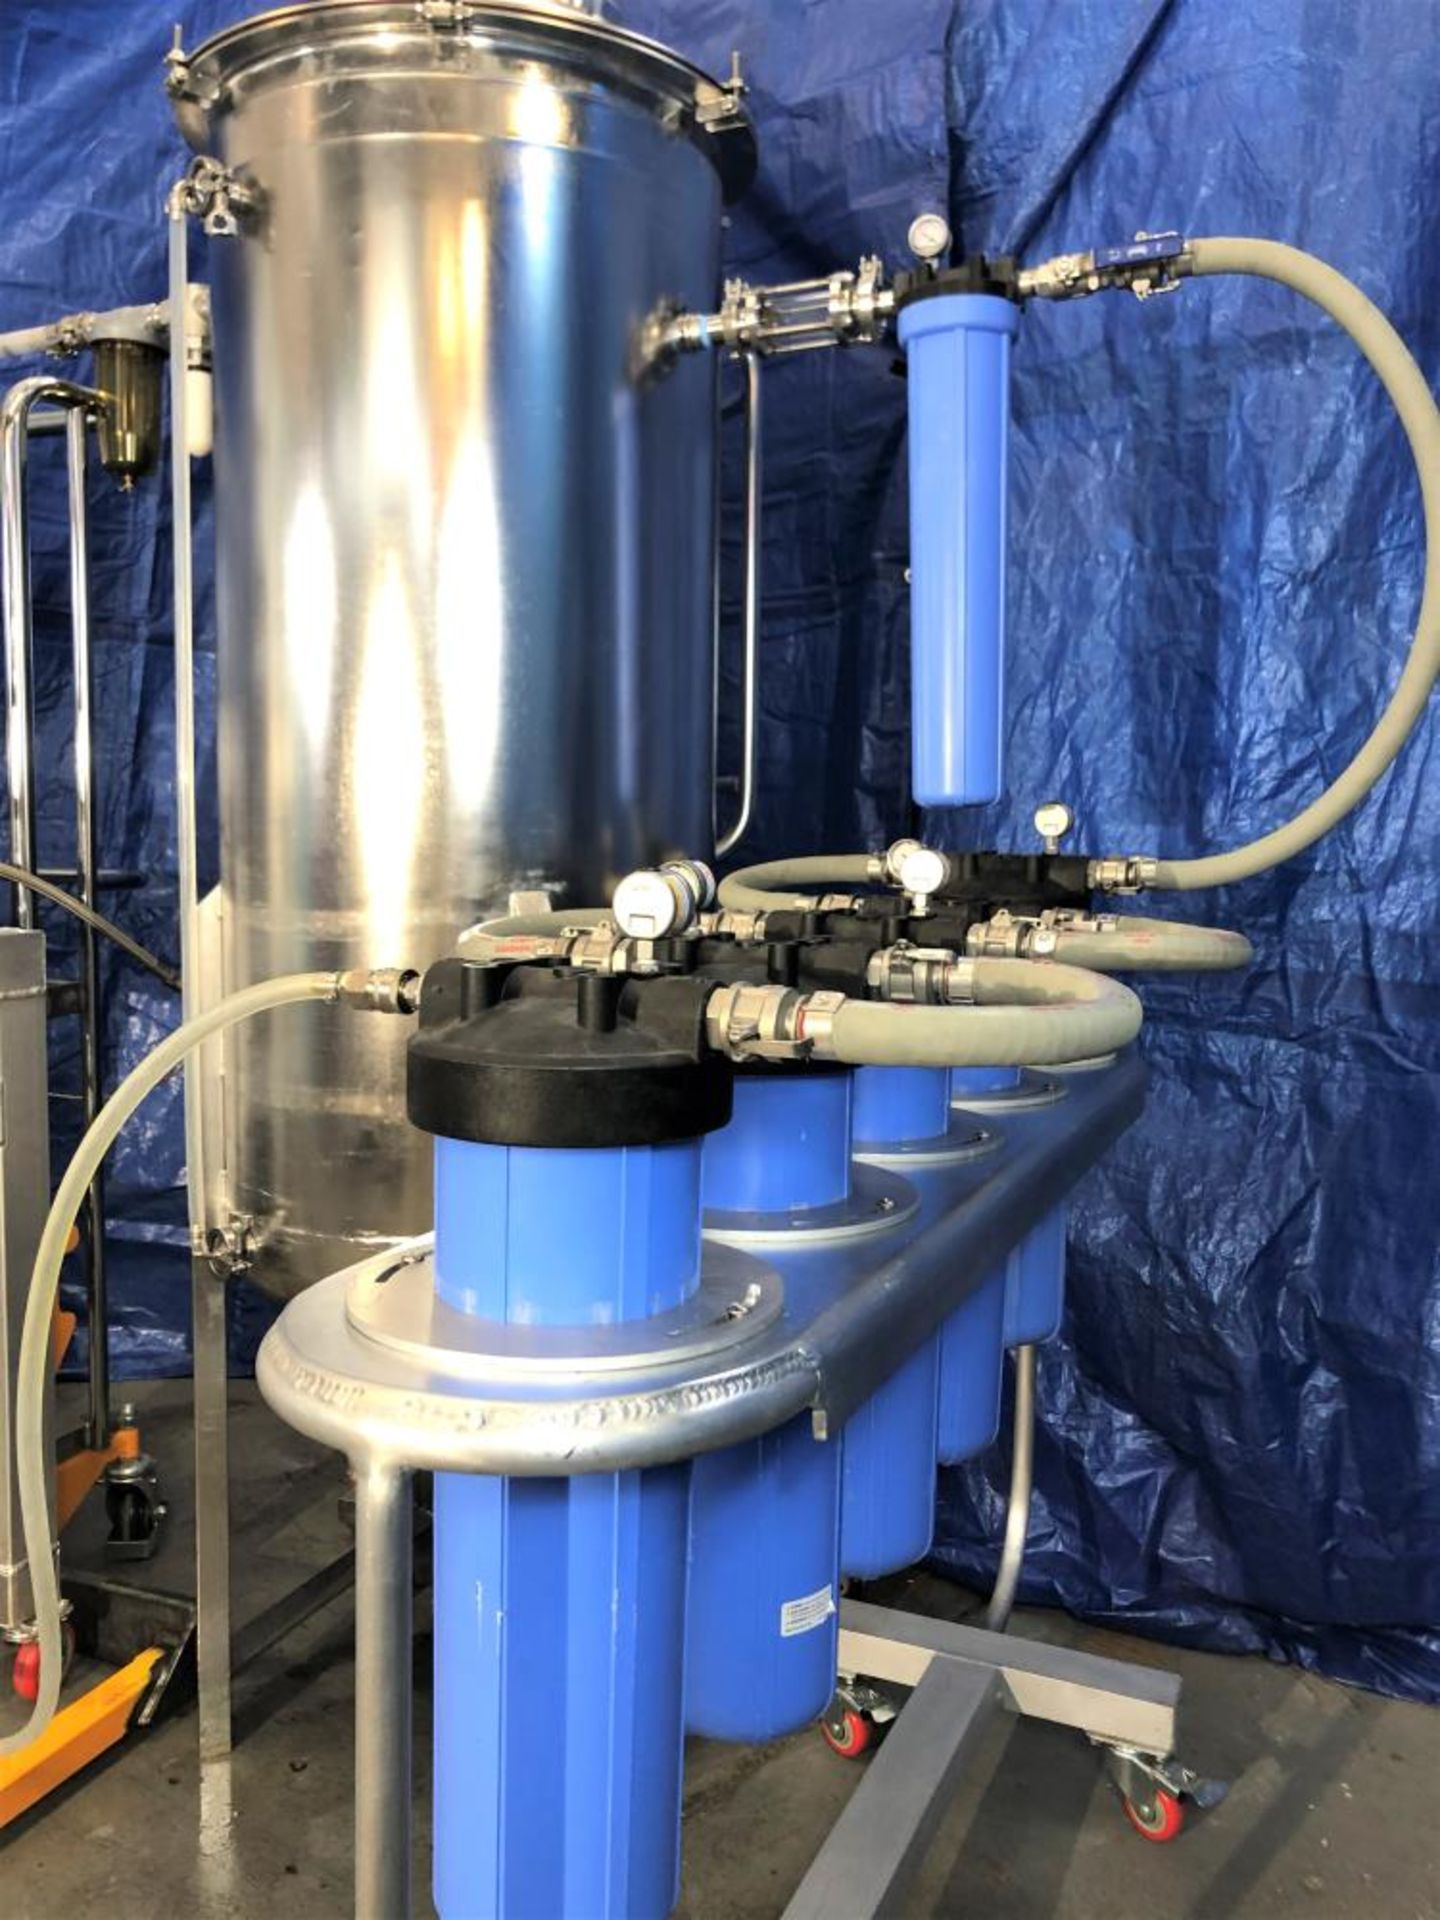 Used-Ultrasonic Ethanol Extractor, 20lb High Purity Extraction System for CBD/THC Extraction - Image 4 of 8